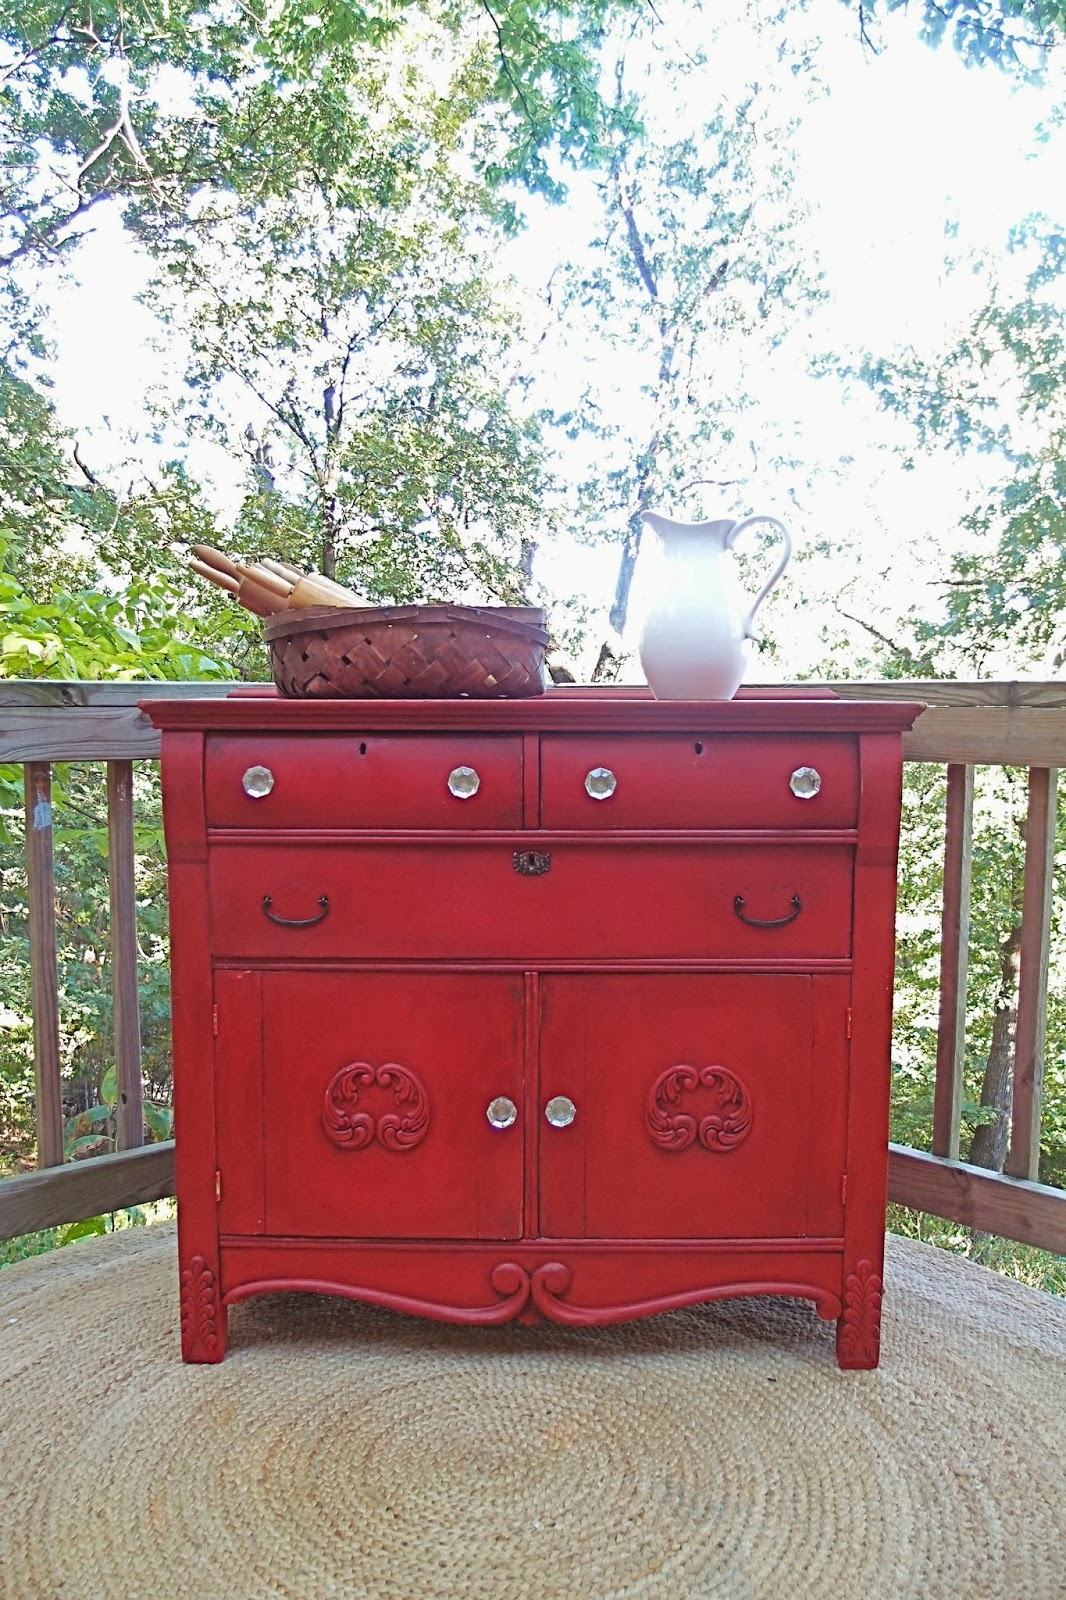 Shades Of Blue Interiors: A Red Country Cabinet And How To Repair. Full resolution‎  photograph, nominally Width 1066 Height 1600 pixels, photograph with #A32832.